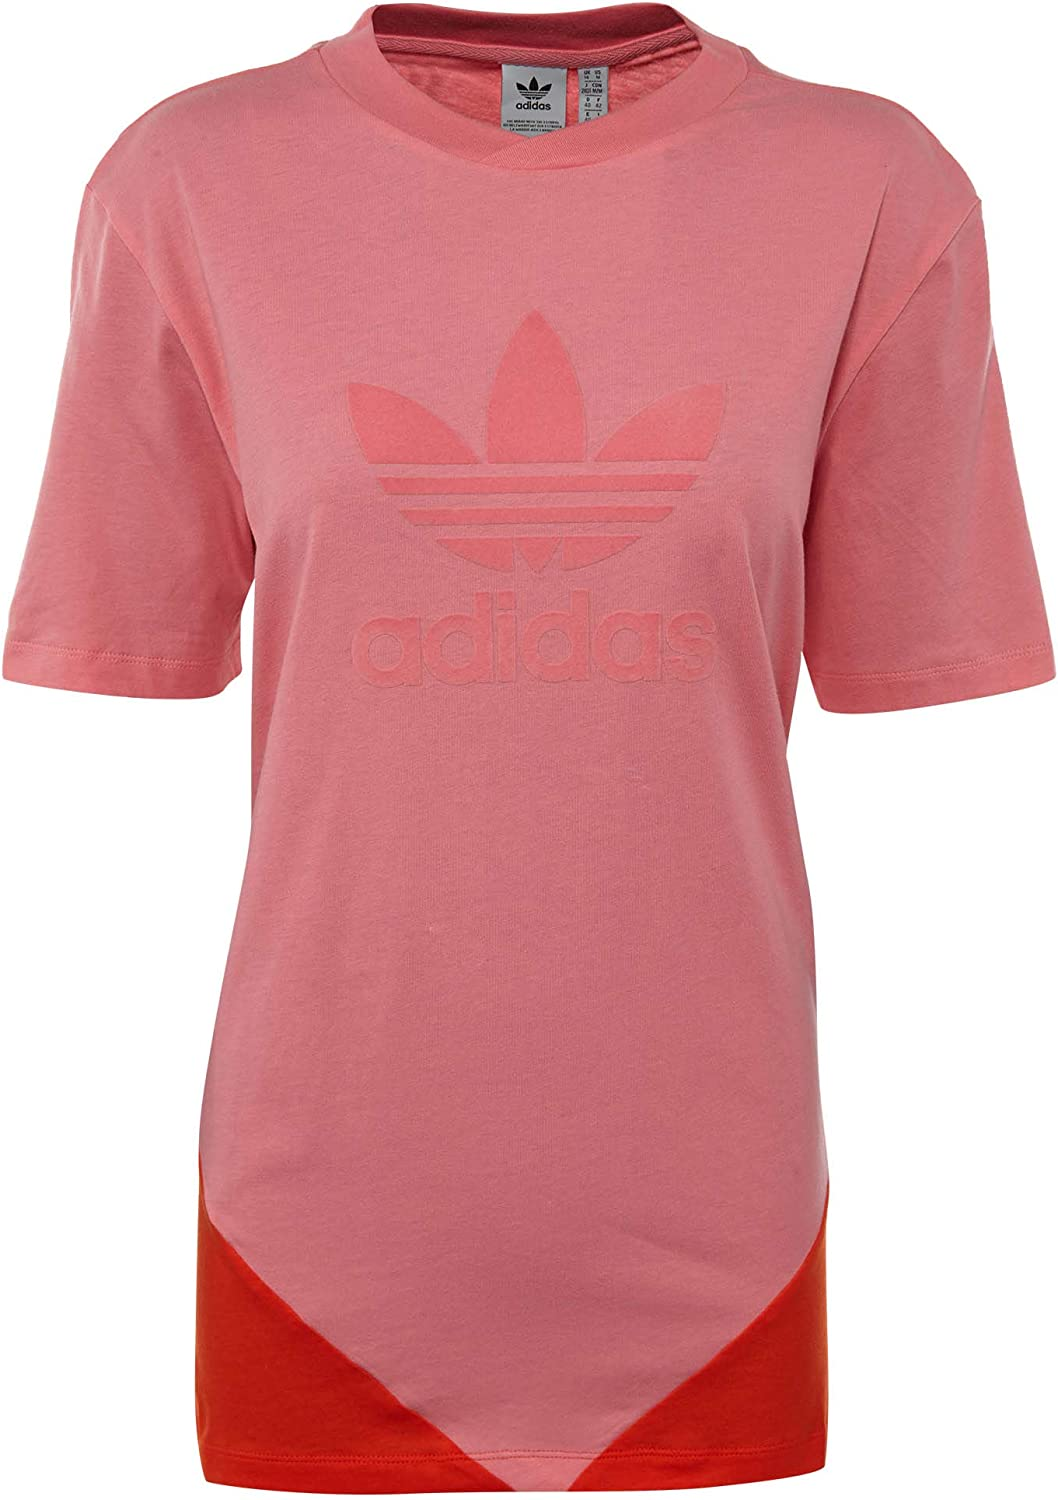 Adidas Originals Women's CLRDO Tee Chalk Pink Bold orange Medium